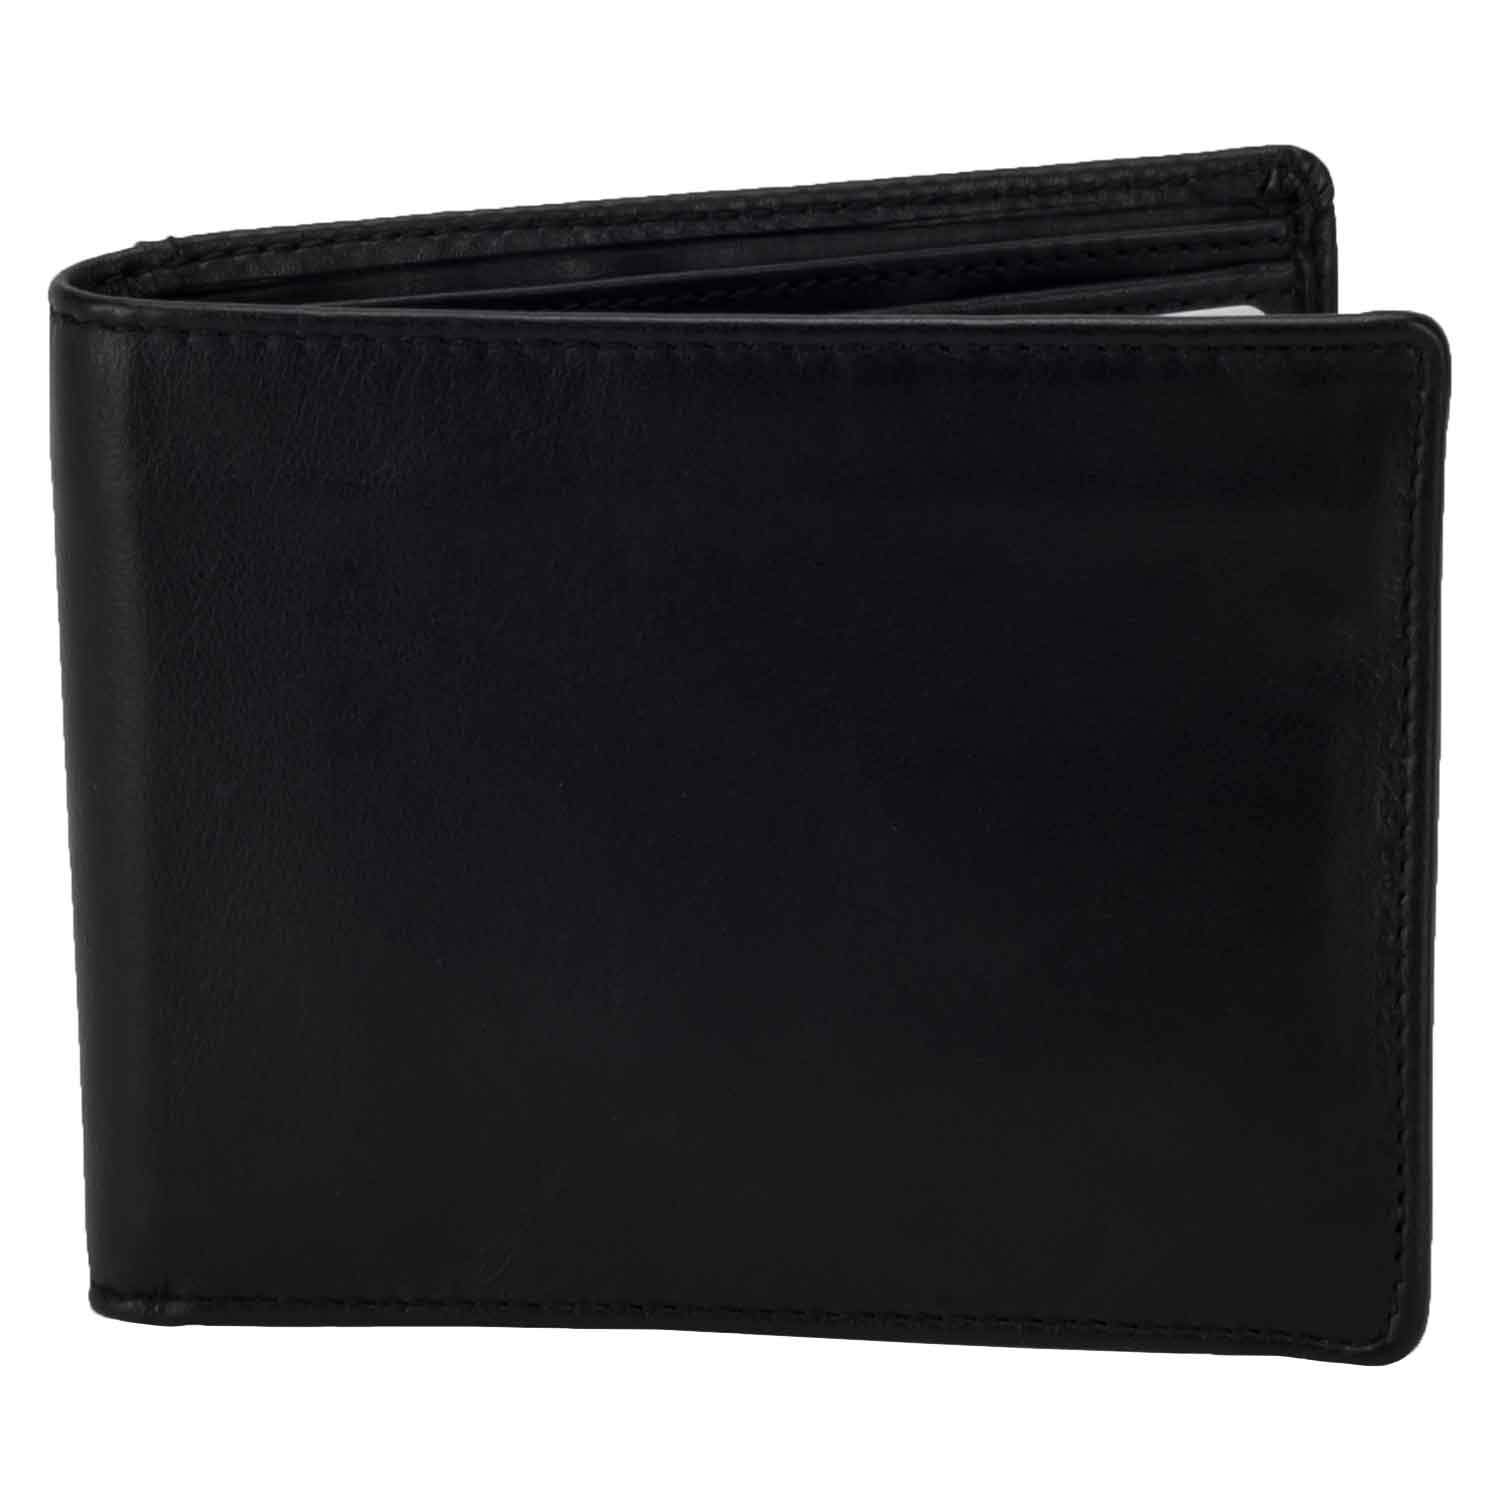 DiLoro Slim Bifold Leather Wallet with Outside Back Slip Pocket and RFID Protection - front view